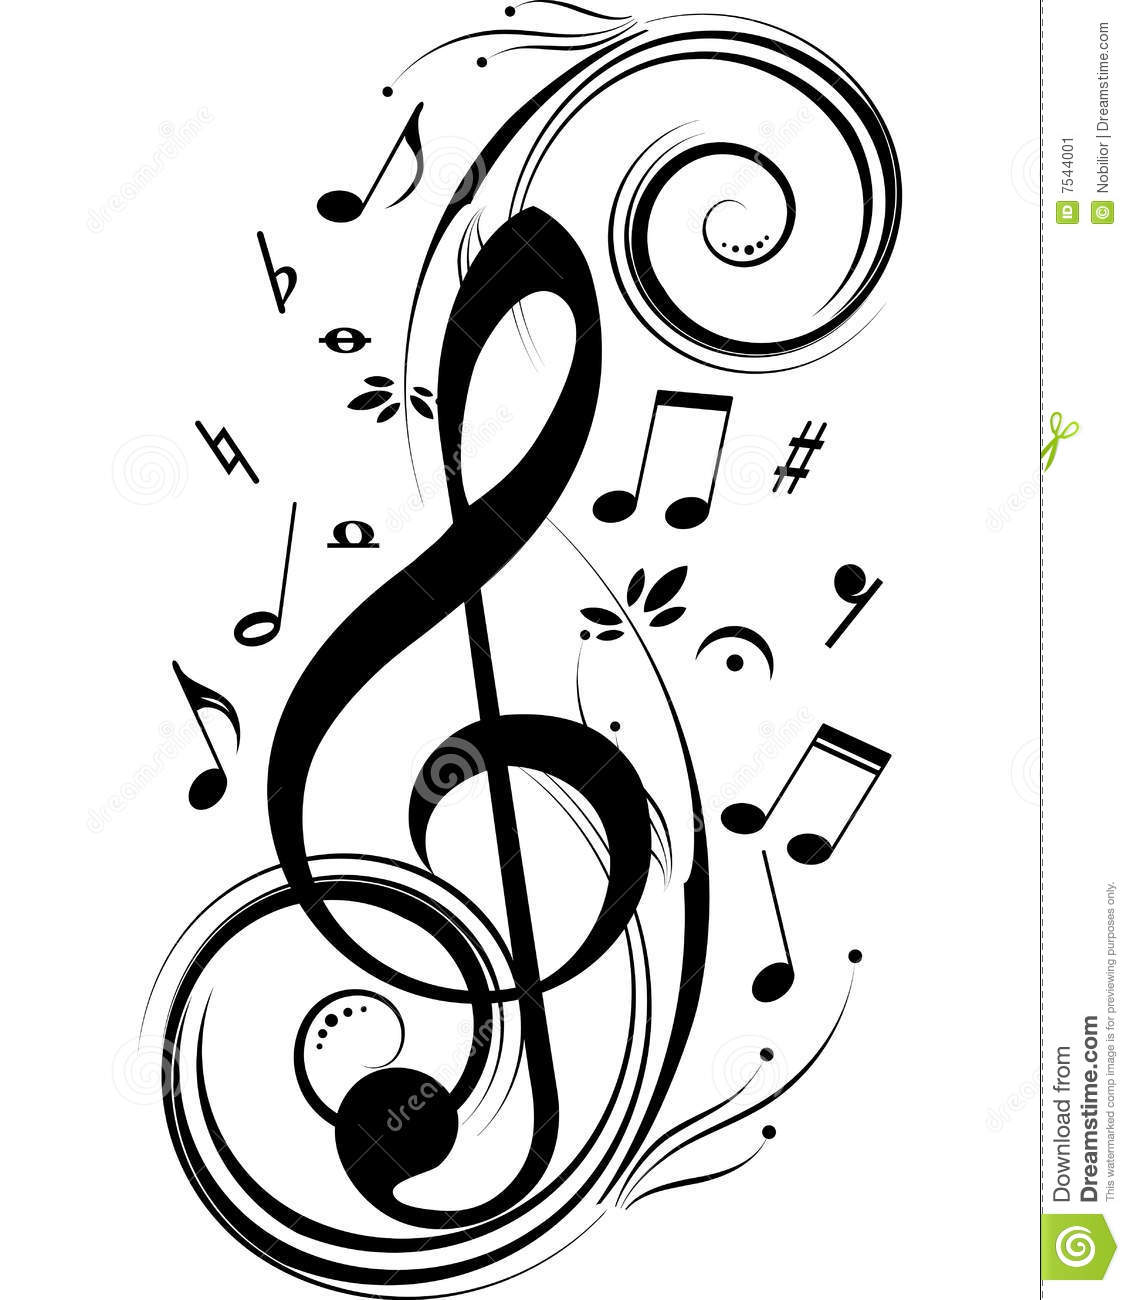 Music notes stock vector. Image of accords, dance, club